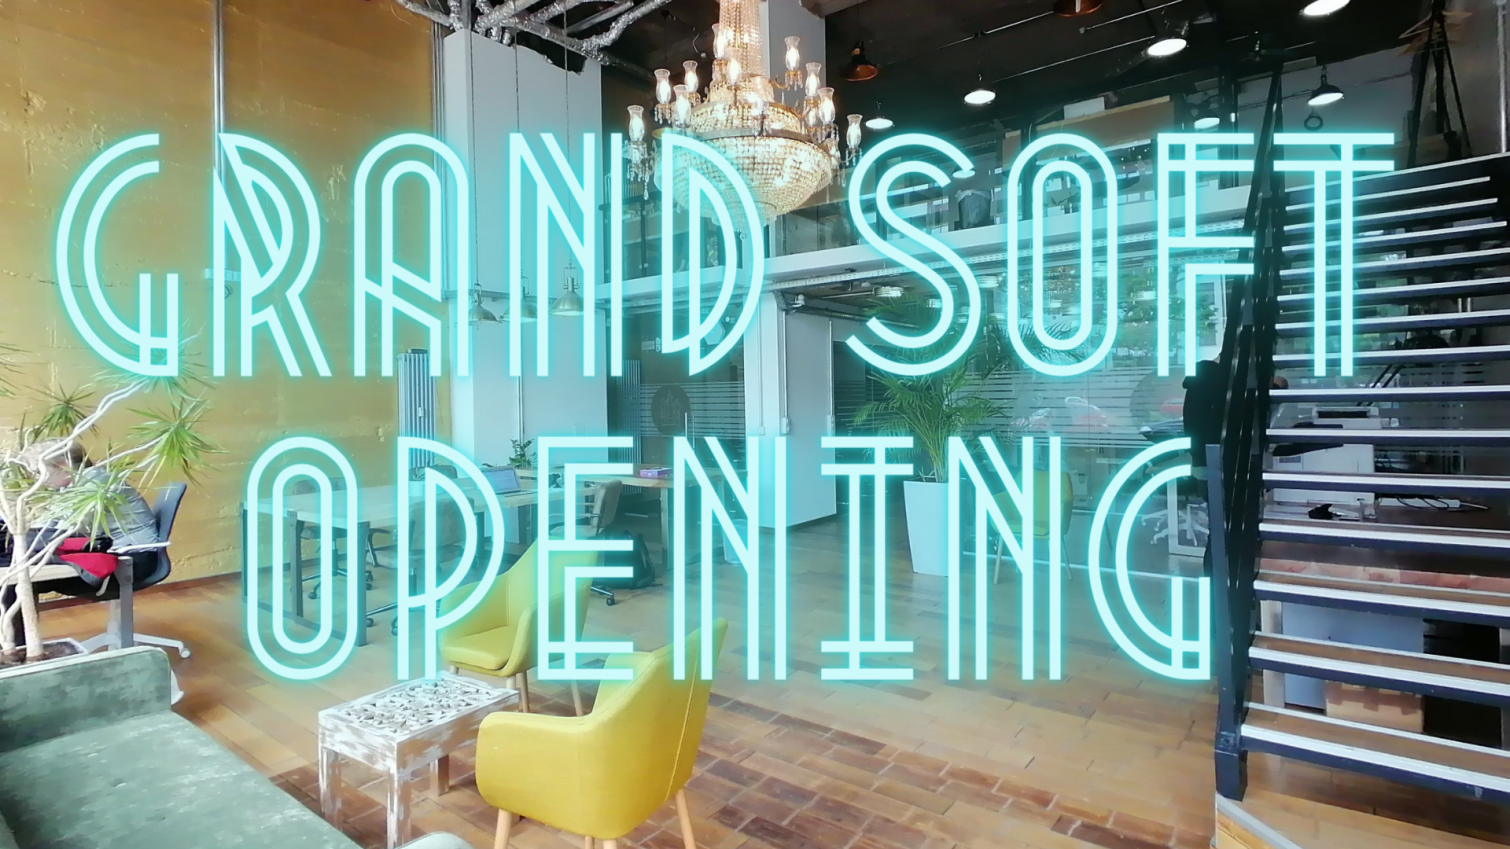 wilmersdorf opening party coworking space